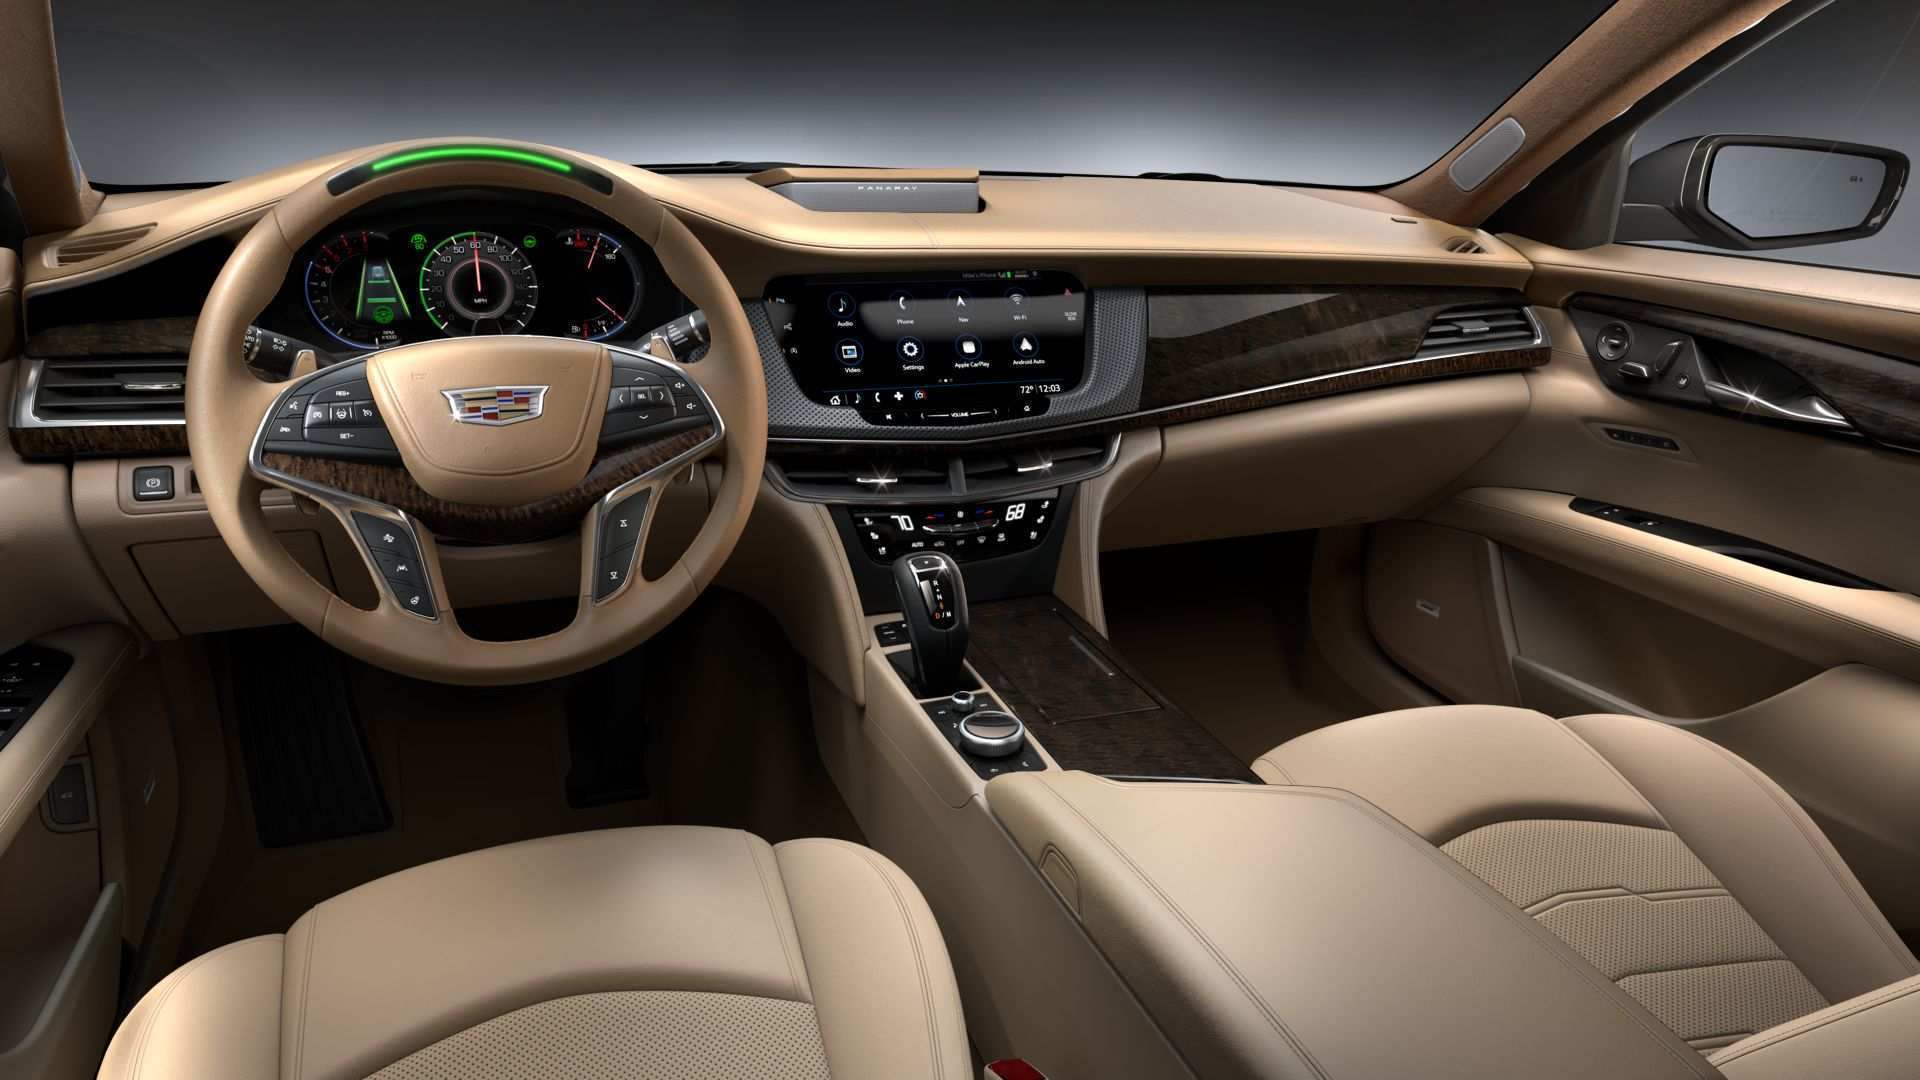 72 Best 2019 Cadillac Interior Review And Release Date